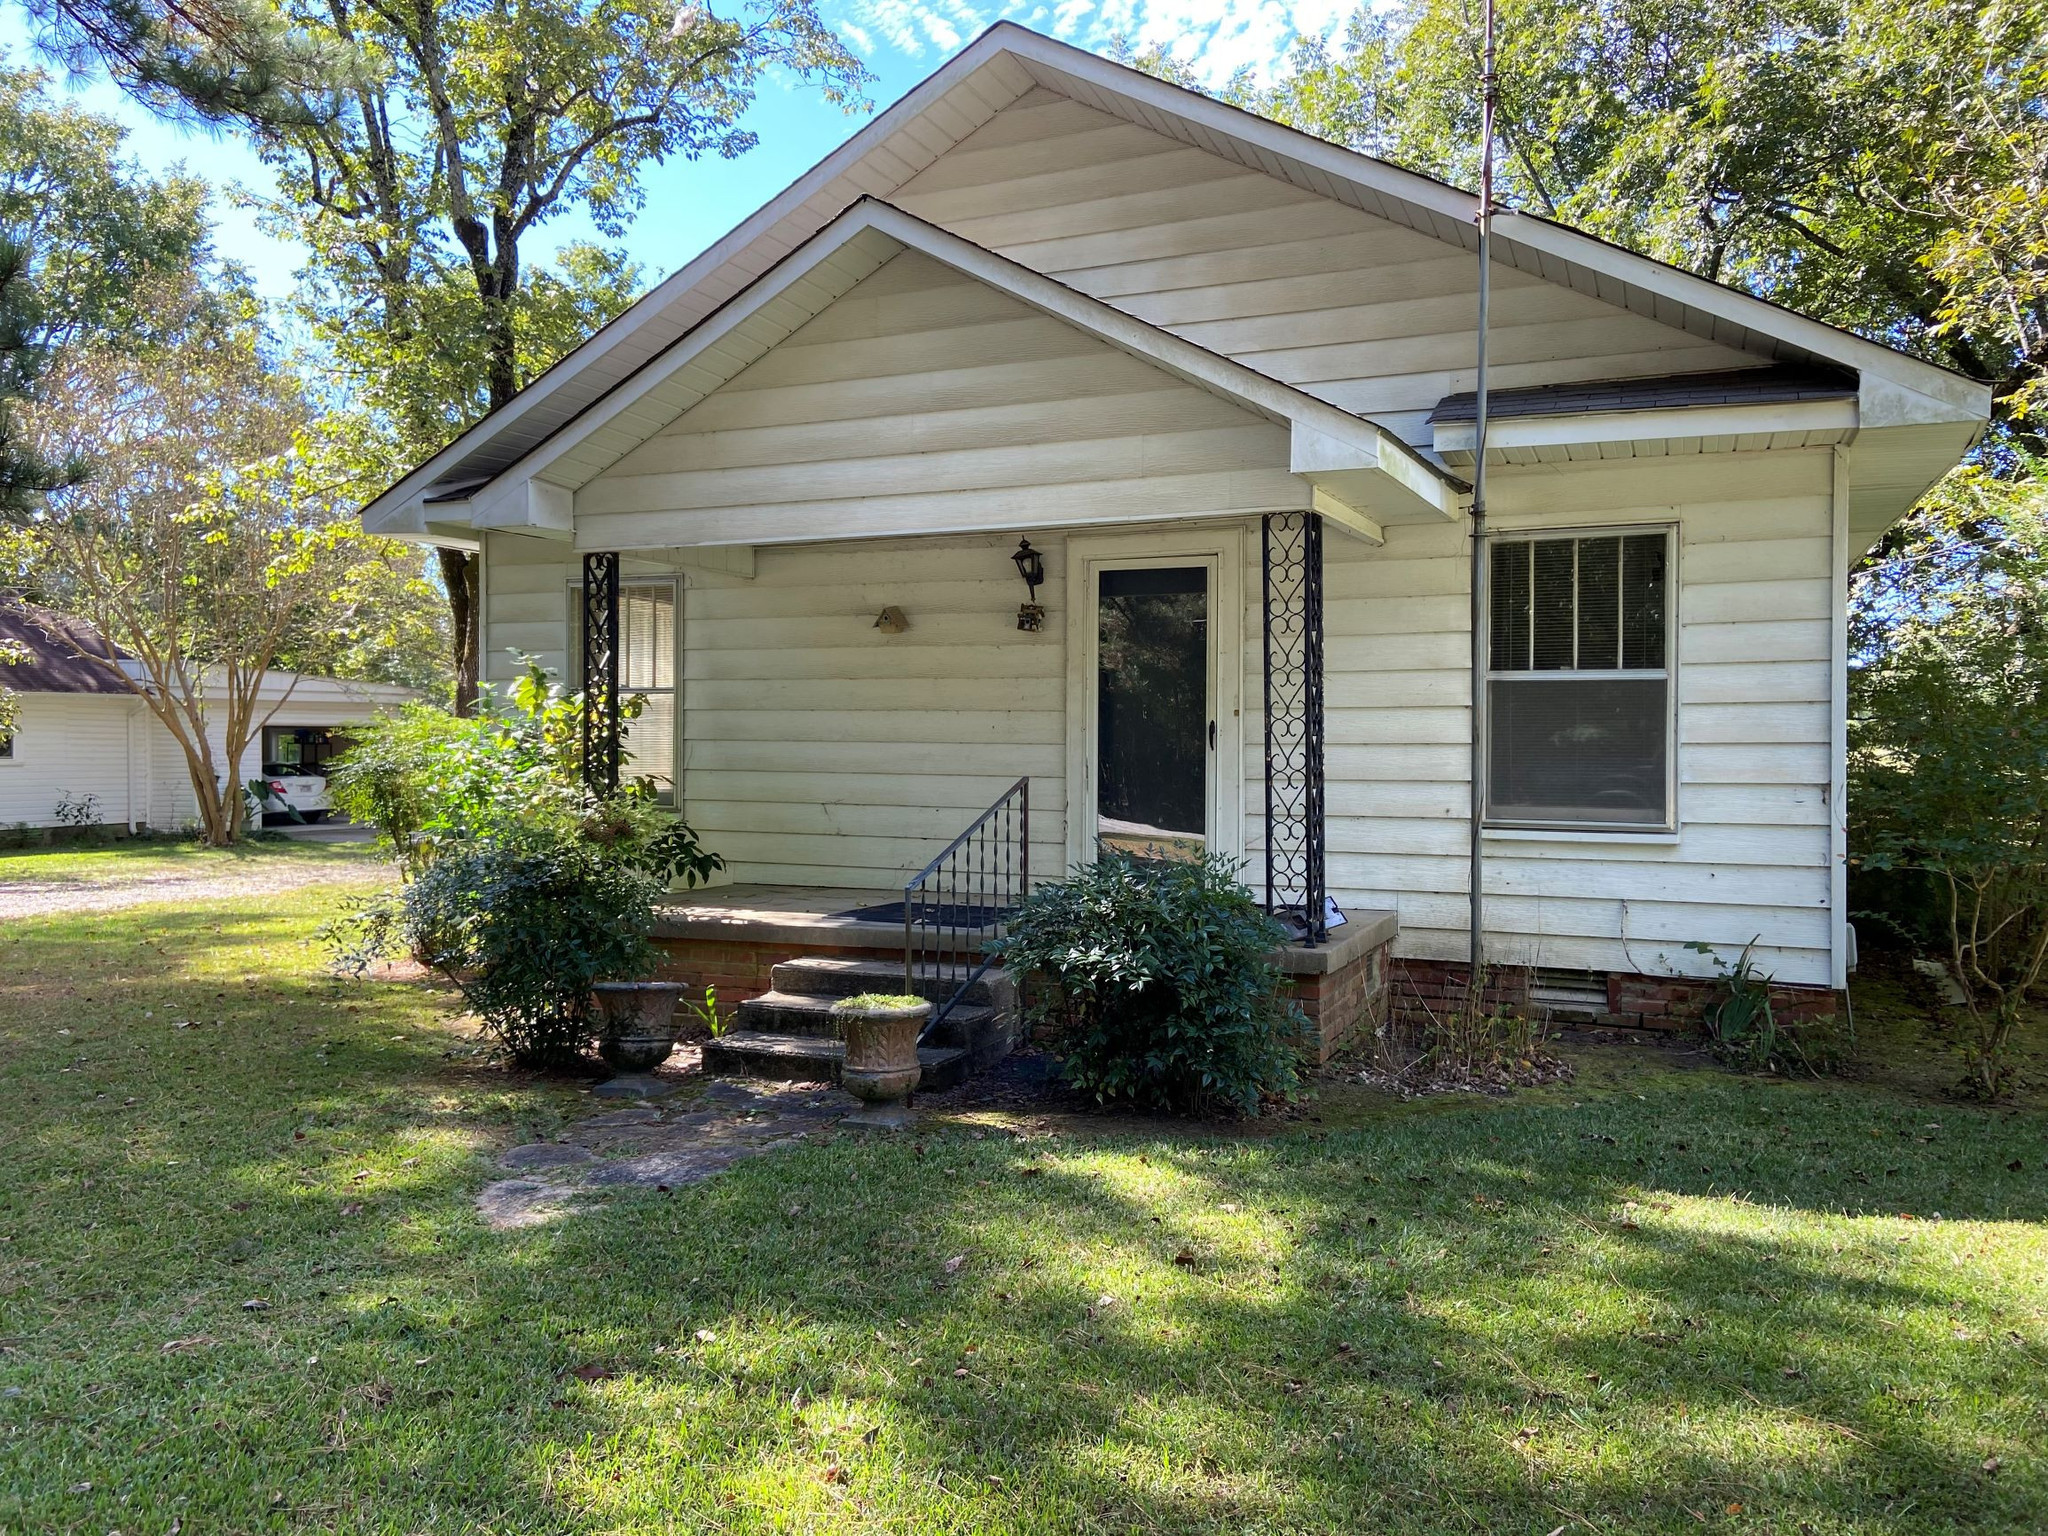 2-Bedroom House In Monticello